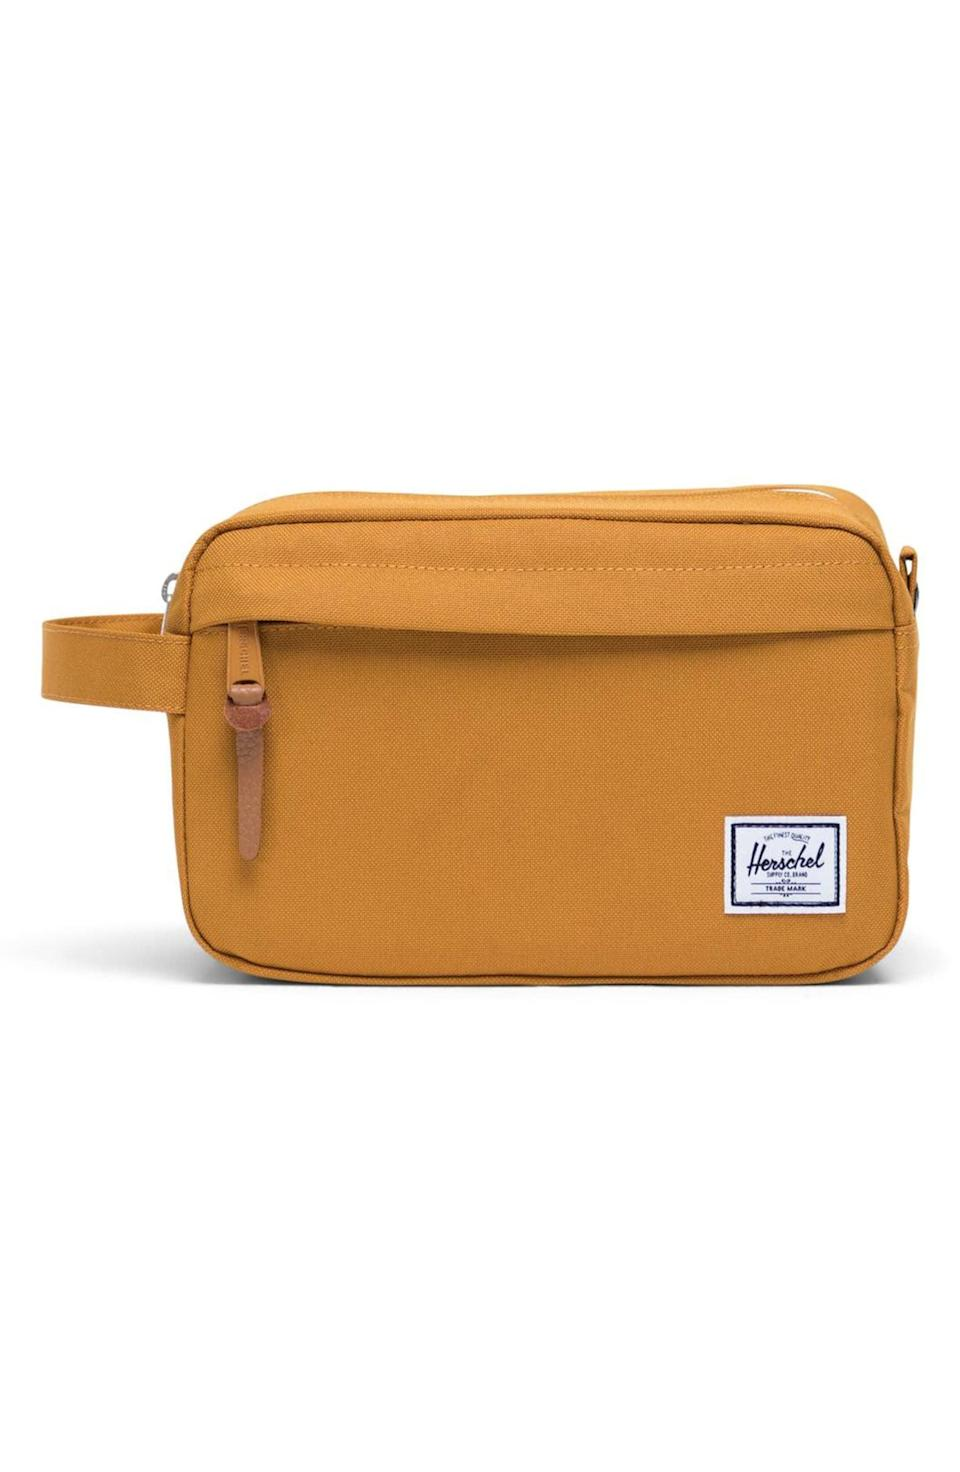 <p>He can stash all his skincare necessities inside the <span>Herschel Supply Co. Chapter Dopp Kit</span> ($35) when he goes on a trip.</p>